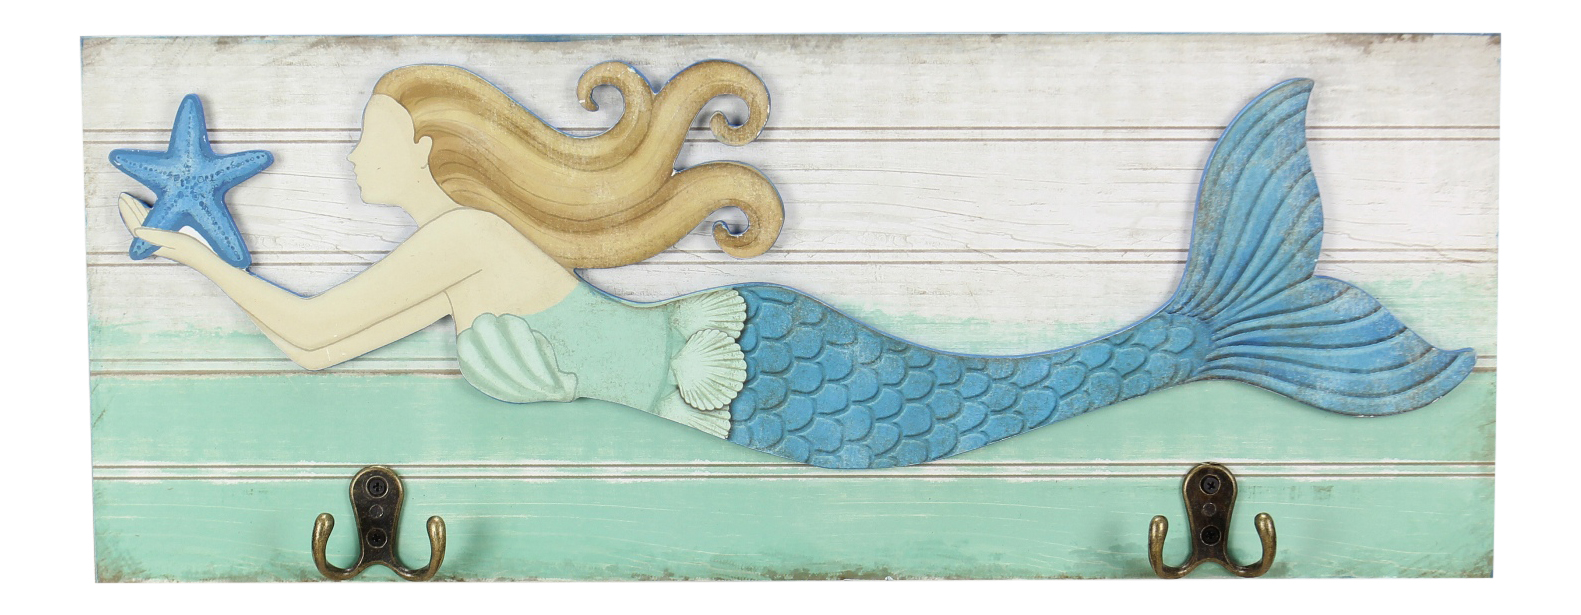 Mermaid Swimming With Starfish Wood Plaque With Hooks Wall